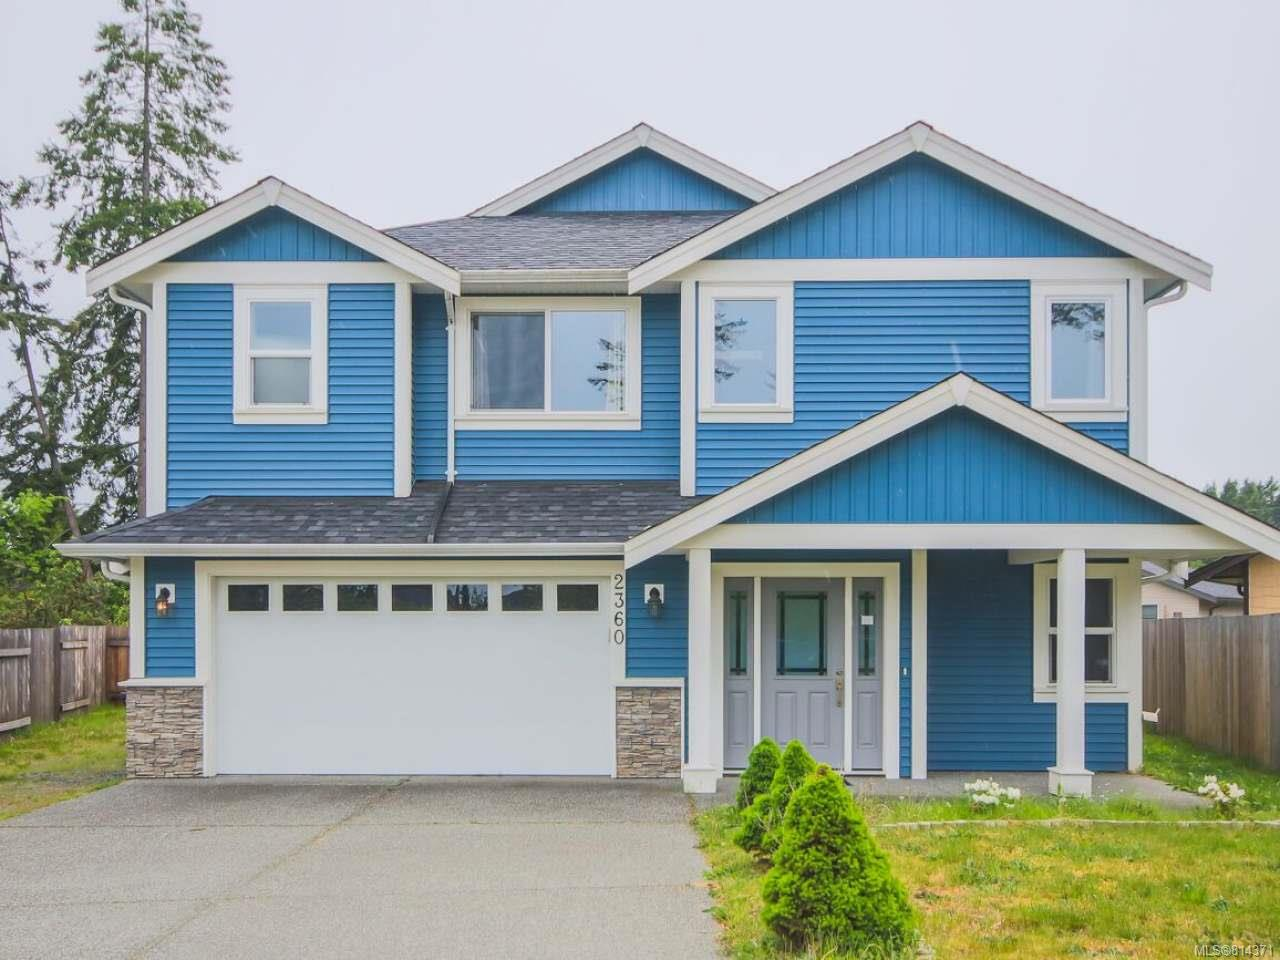 FEATURED LISTING: 2360 Mandalik Pl NANAIMO